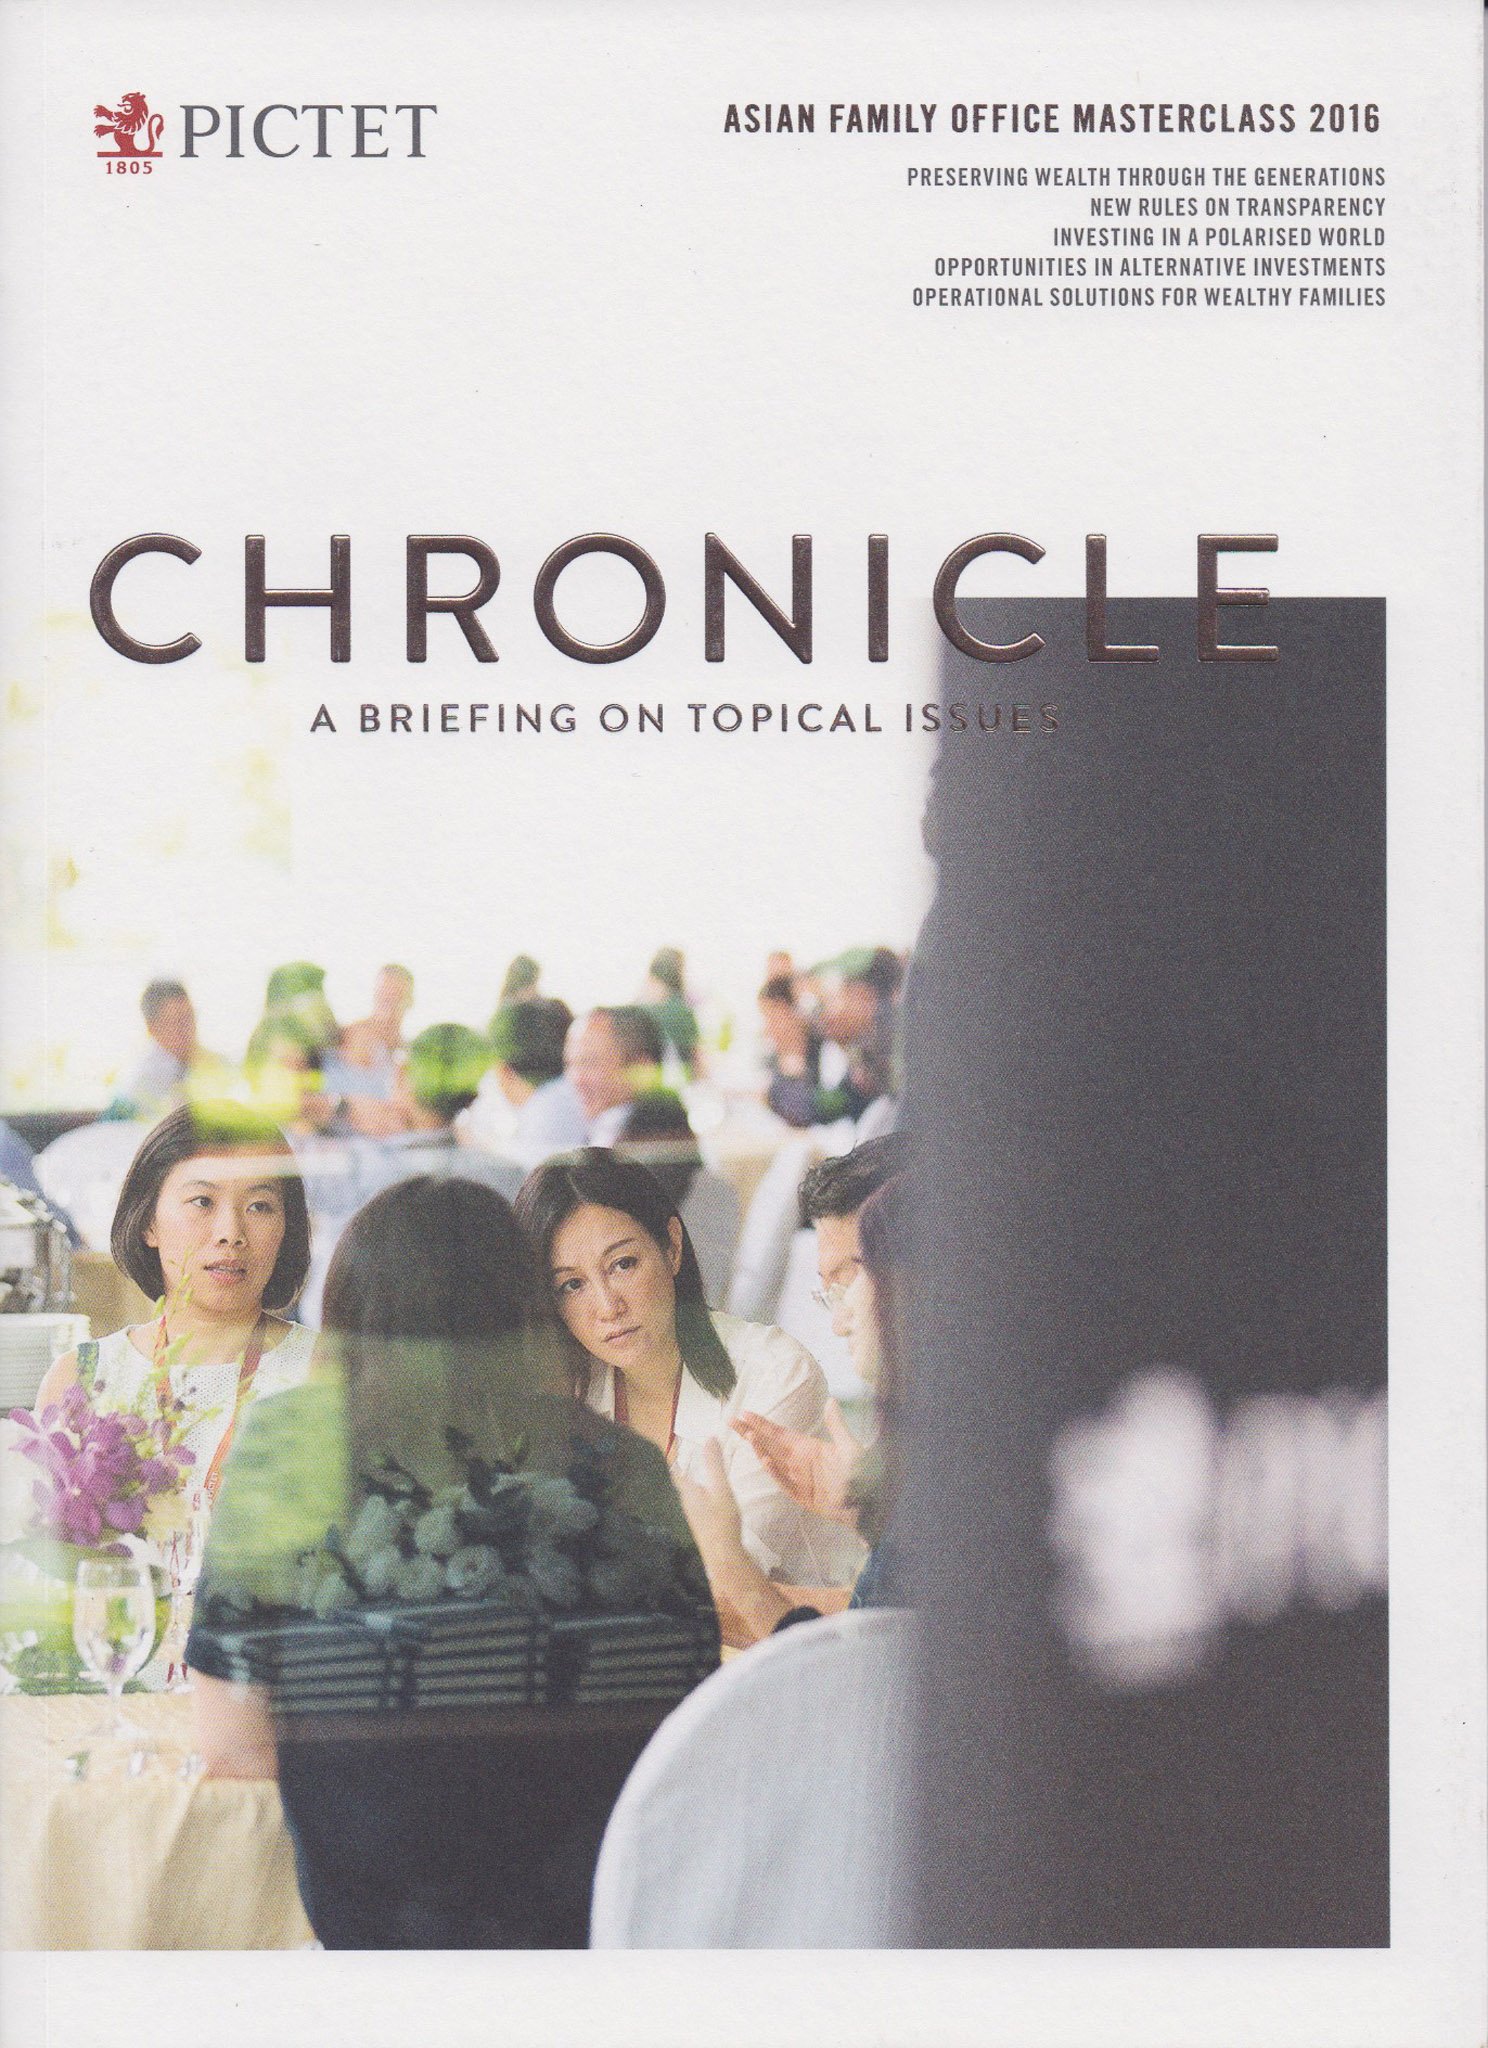 012Chronicle-1-singapore-photographer-editorial-commercial-2_05.jpg